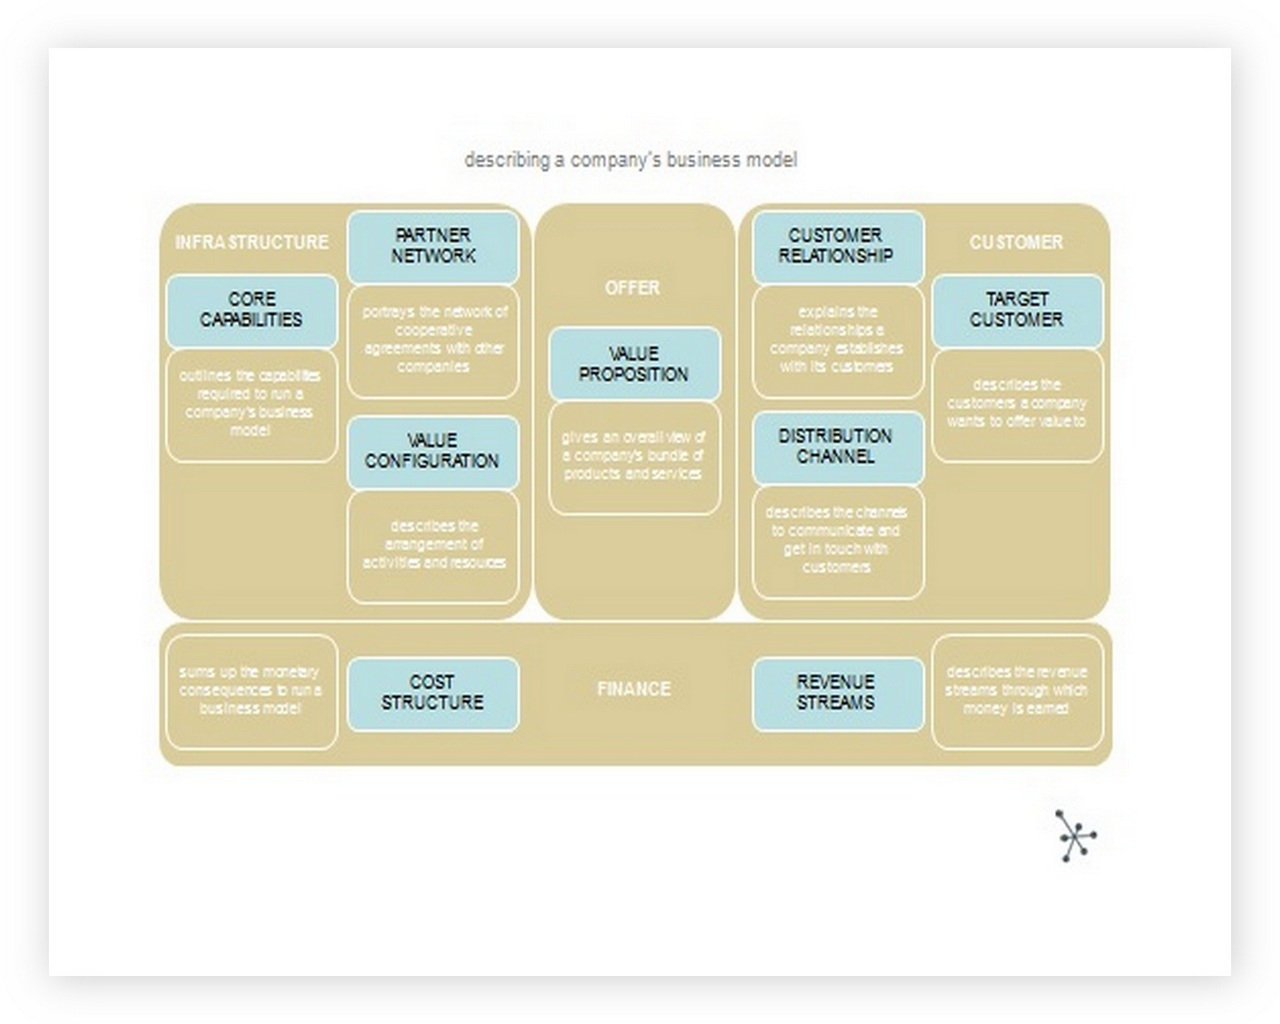 Business Model Canvas Template ppt 03